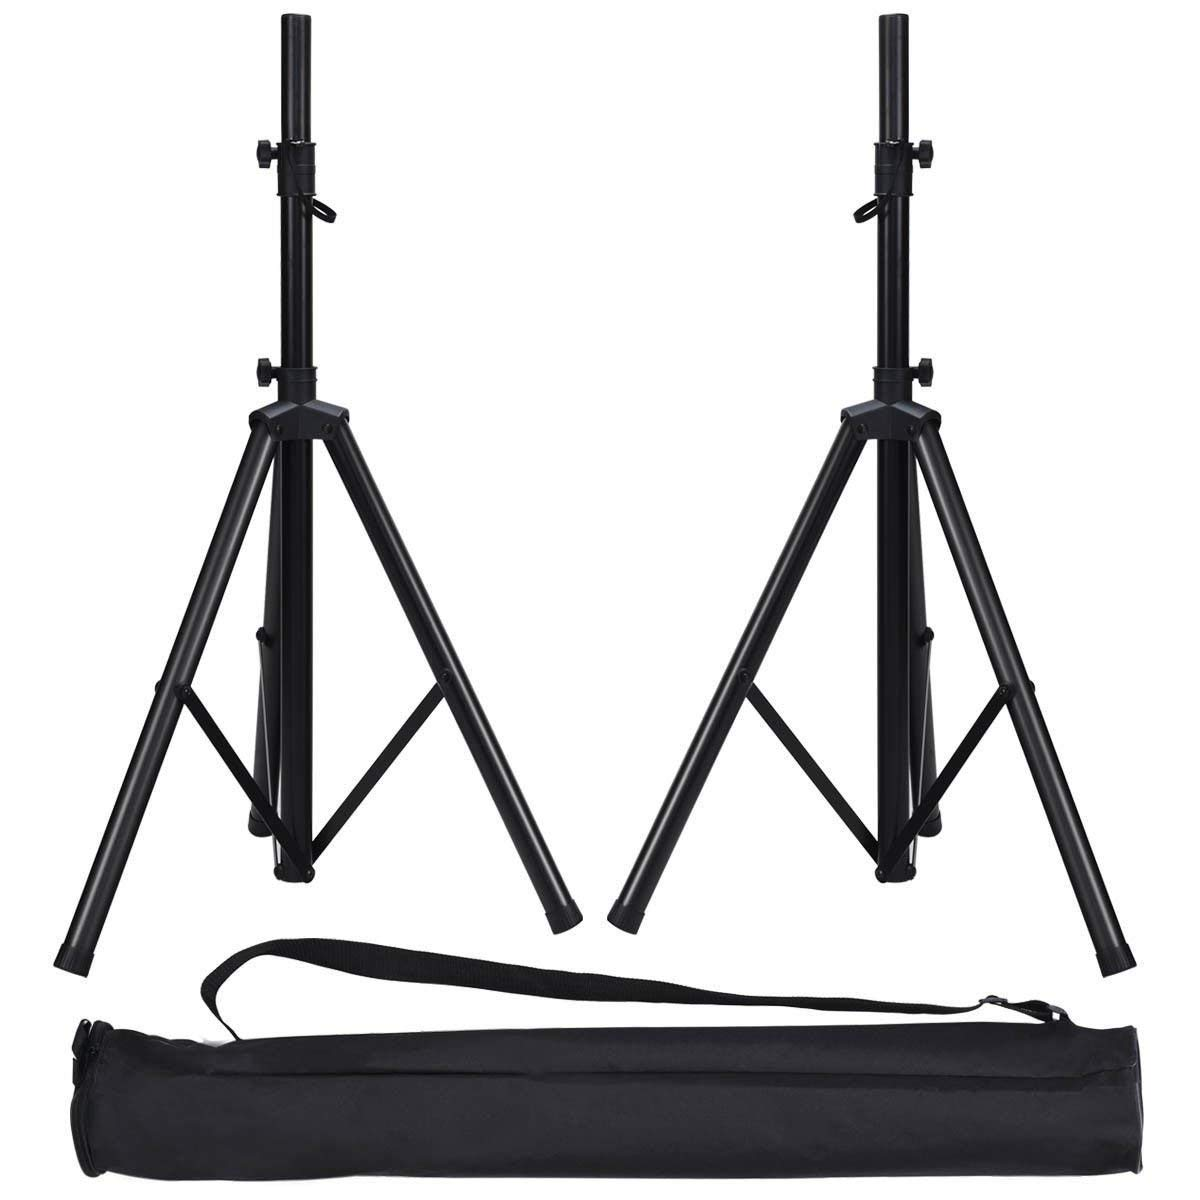 """Picotech Adjustable 28""""-74"""" Speaker Stand Steel Black Durable Heavy Duty Sturdy Portable Expandable Long Tripod 110Lb Weight Capacity Cable Ties Straps Non-slip Feet 2 Carrying Oxford Bags DJs Bands"""